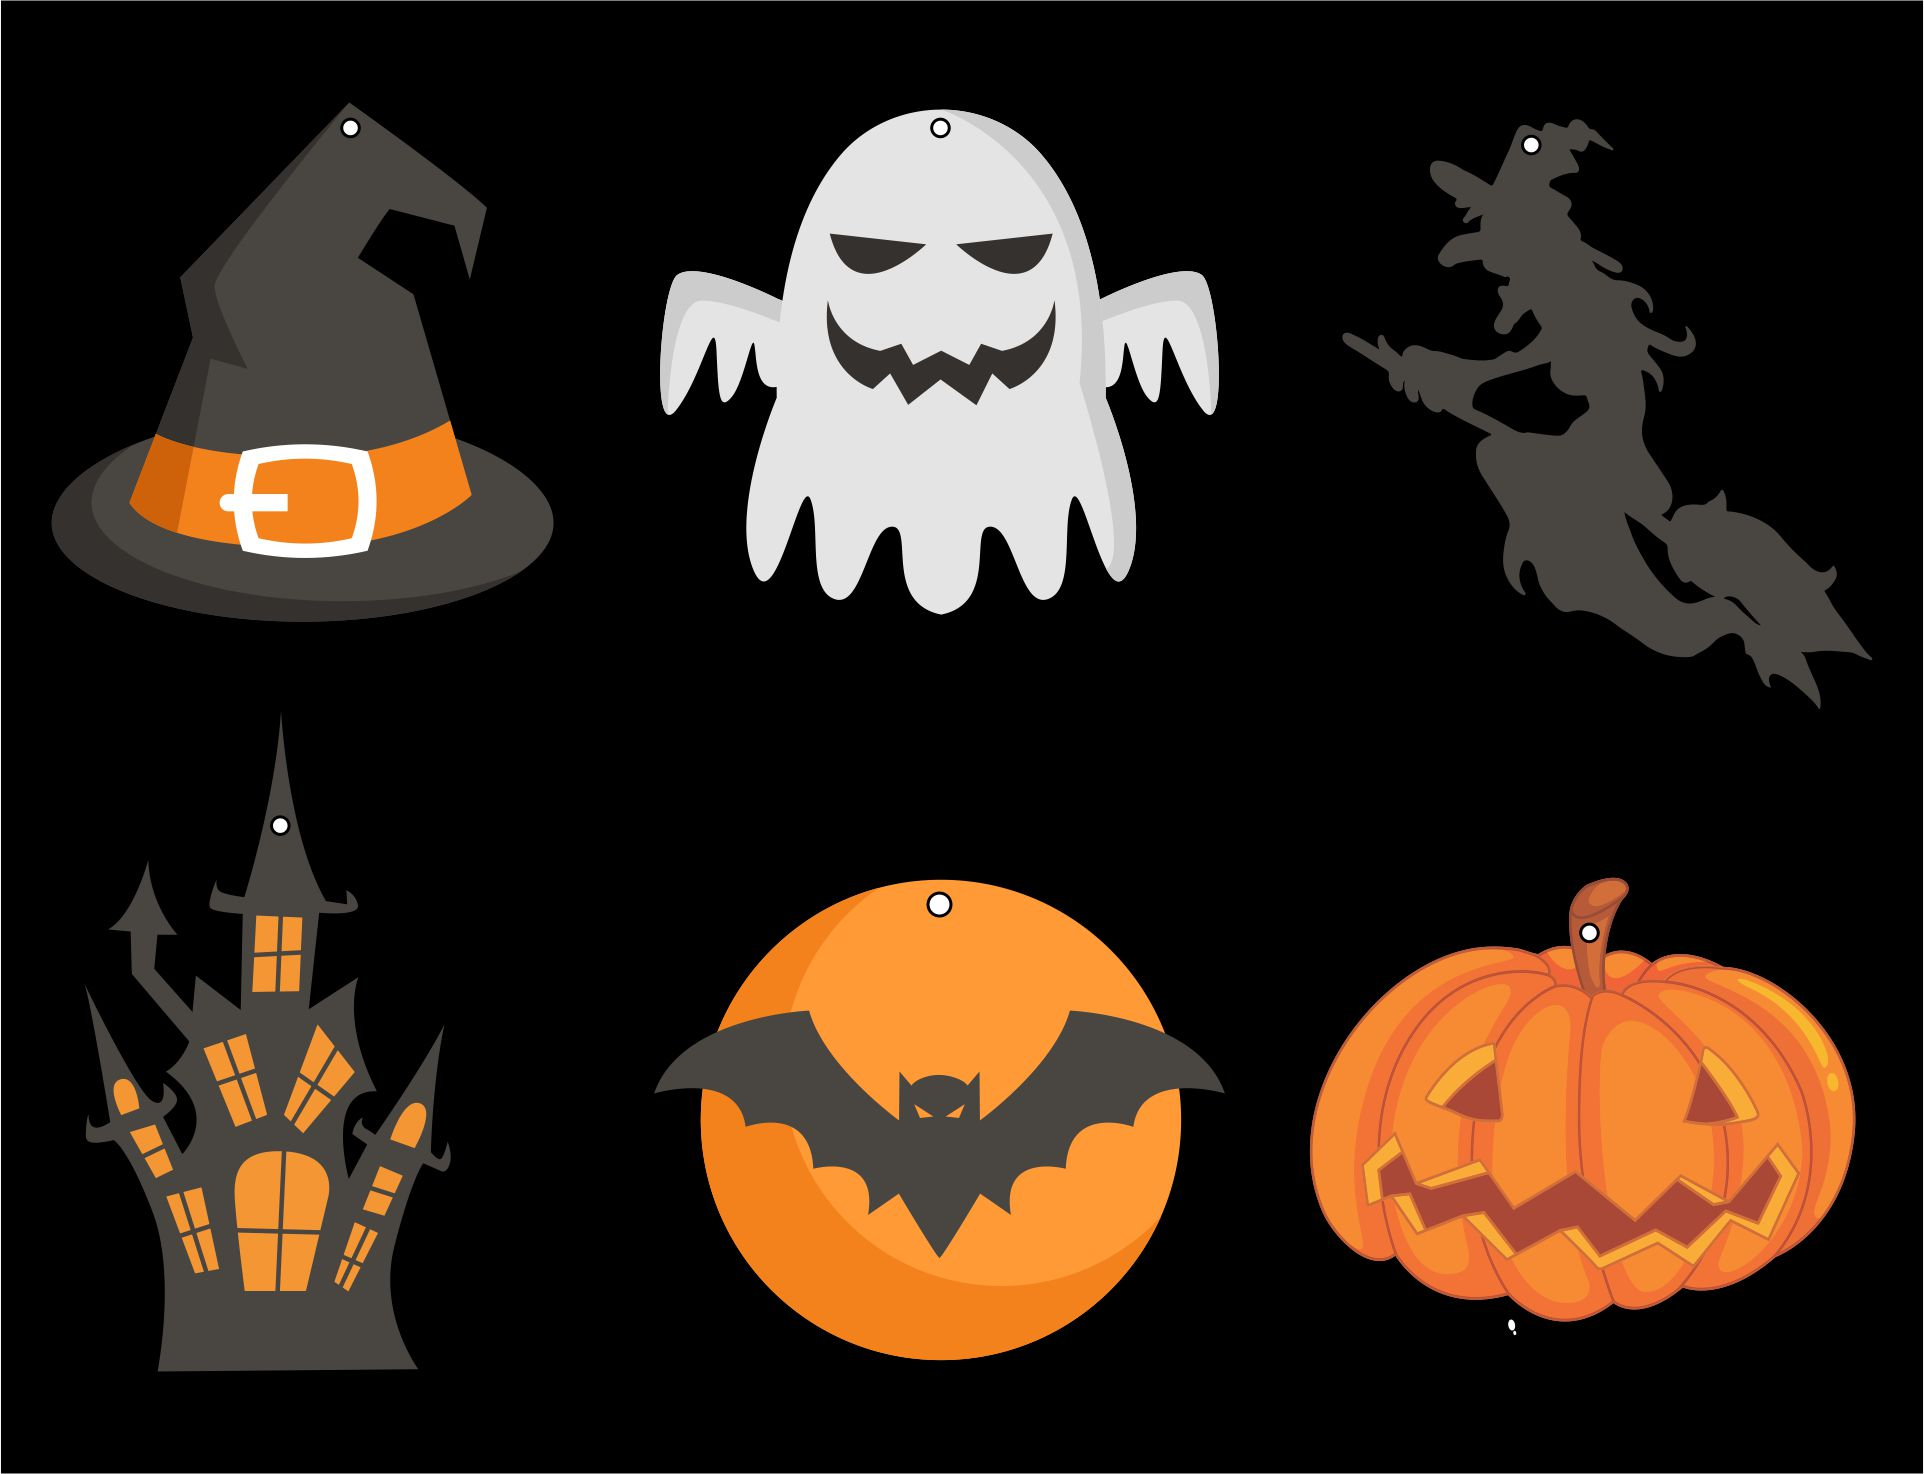 Objects Of Halloween Day In Paper Cut Out Hanging On Black Background